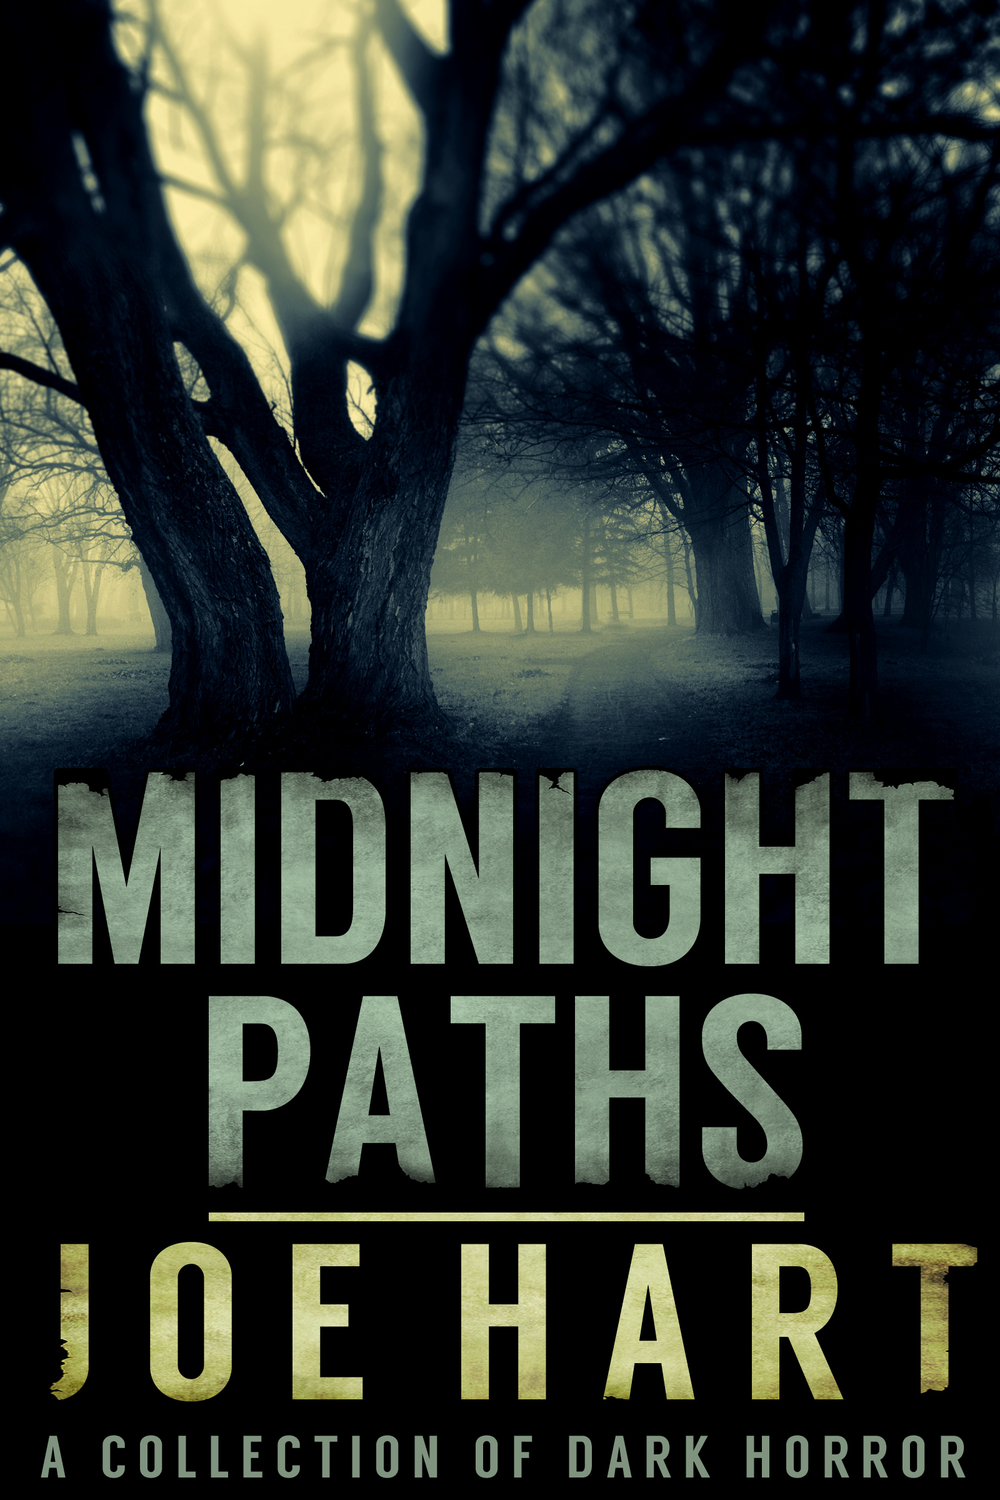 Midnight_Paths2-1.jpg